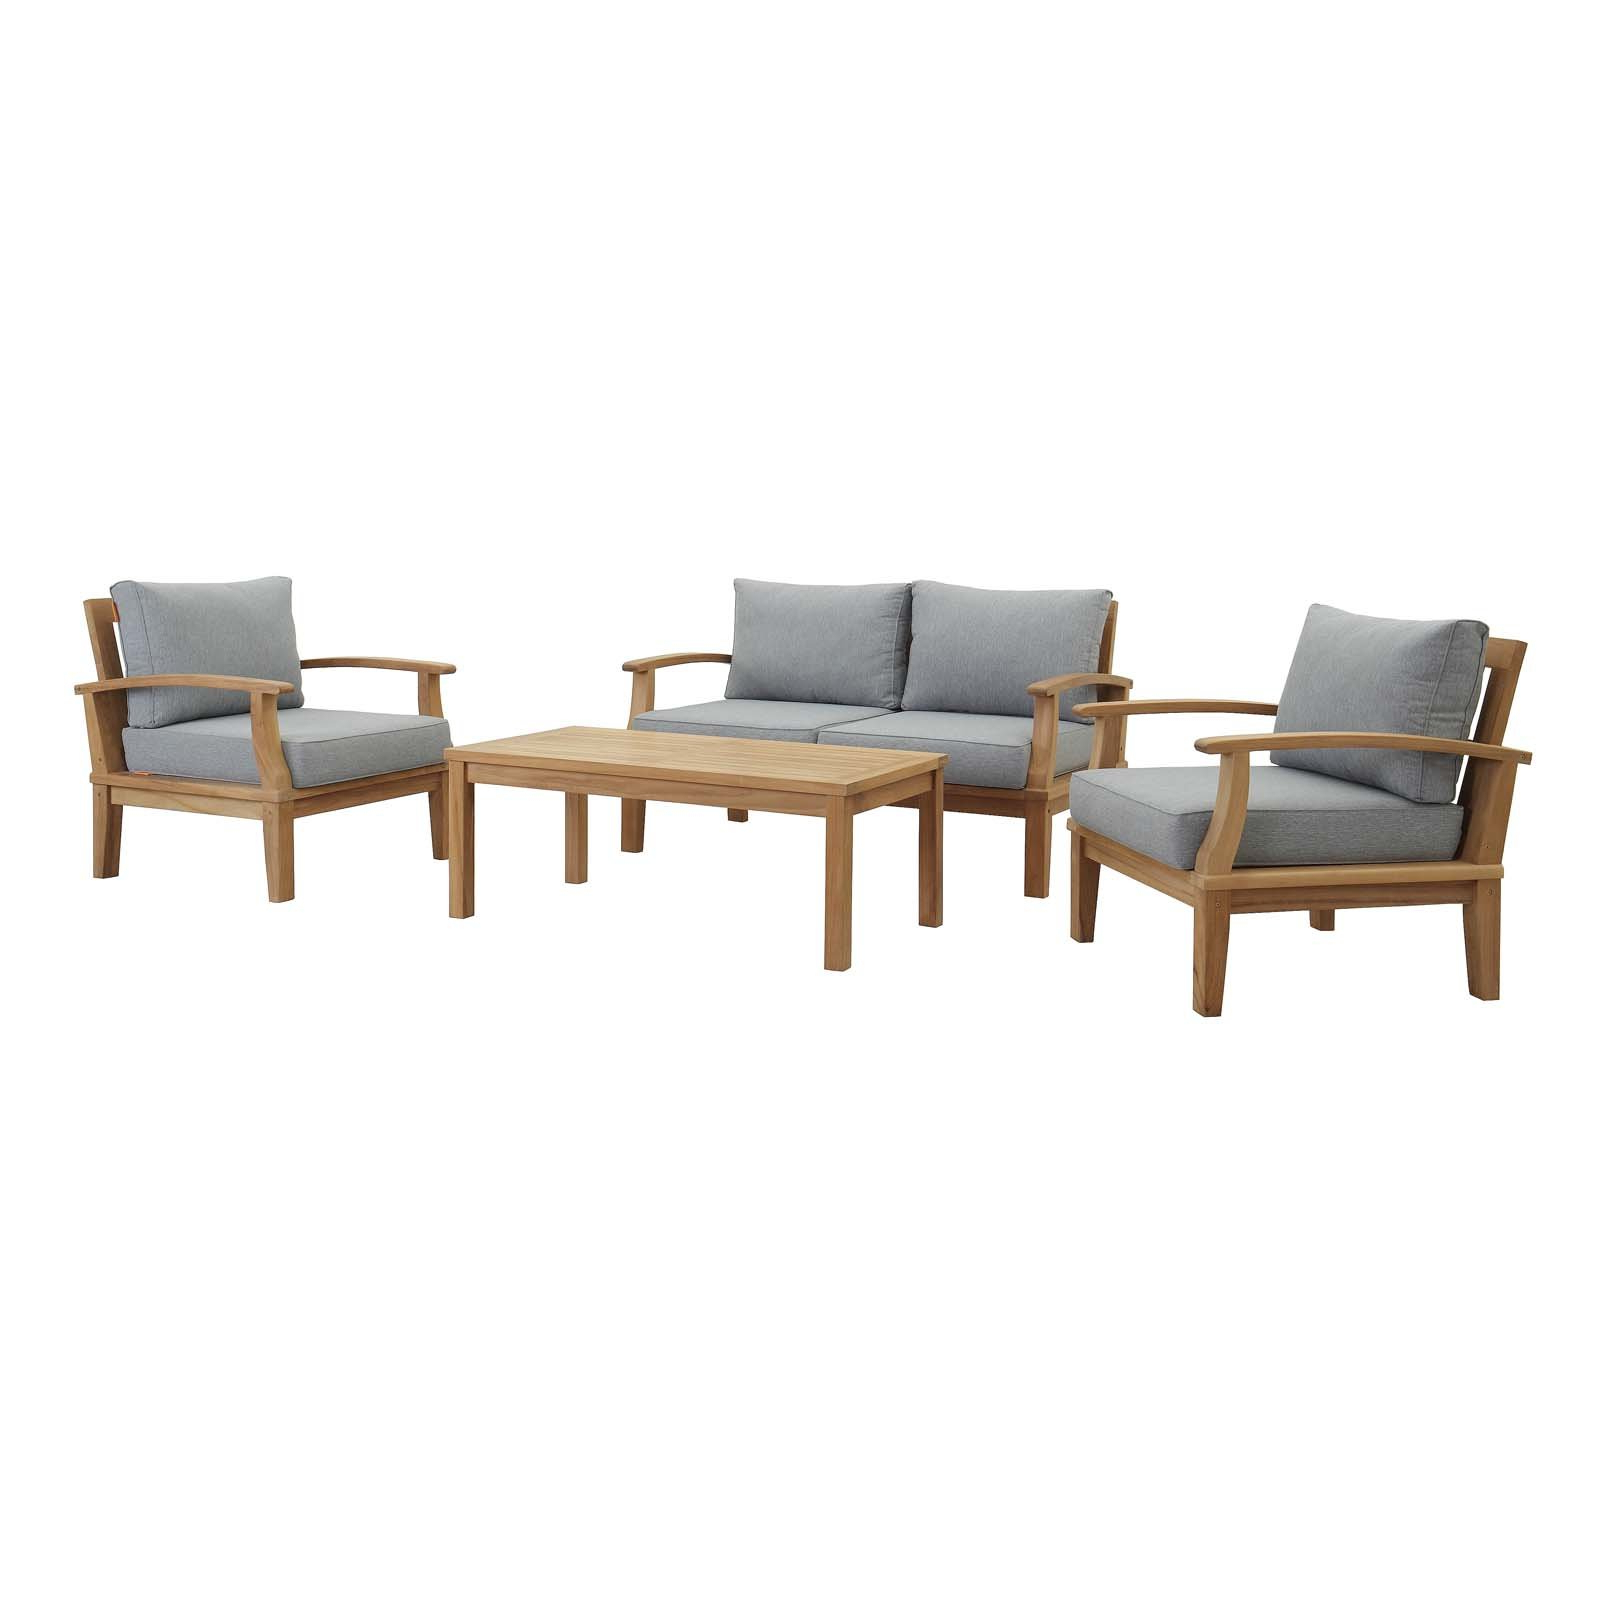 Most Recent Elaina Cantilever Umbrellas Throughout Elaina 4 Piece Teak Sofa Seating Group With Cushions (View 9 of 20)